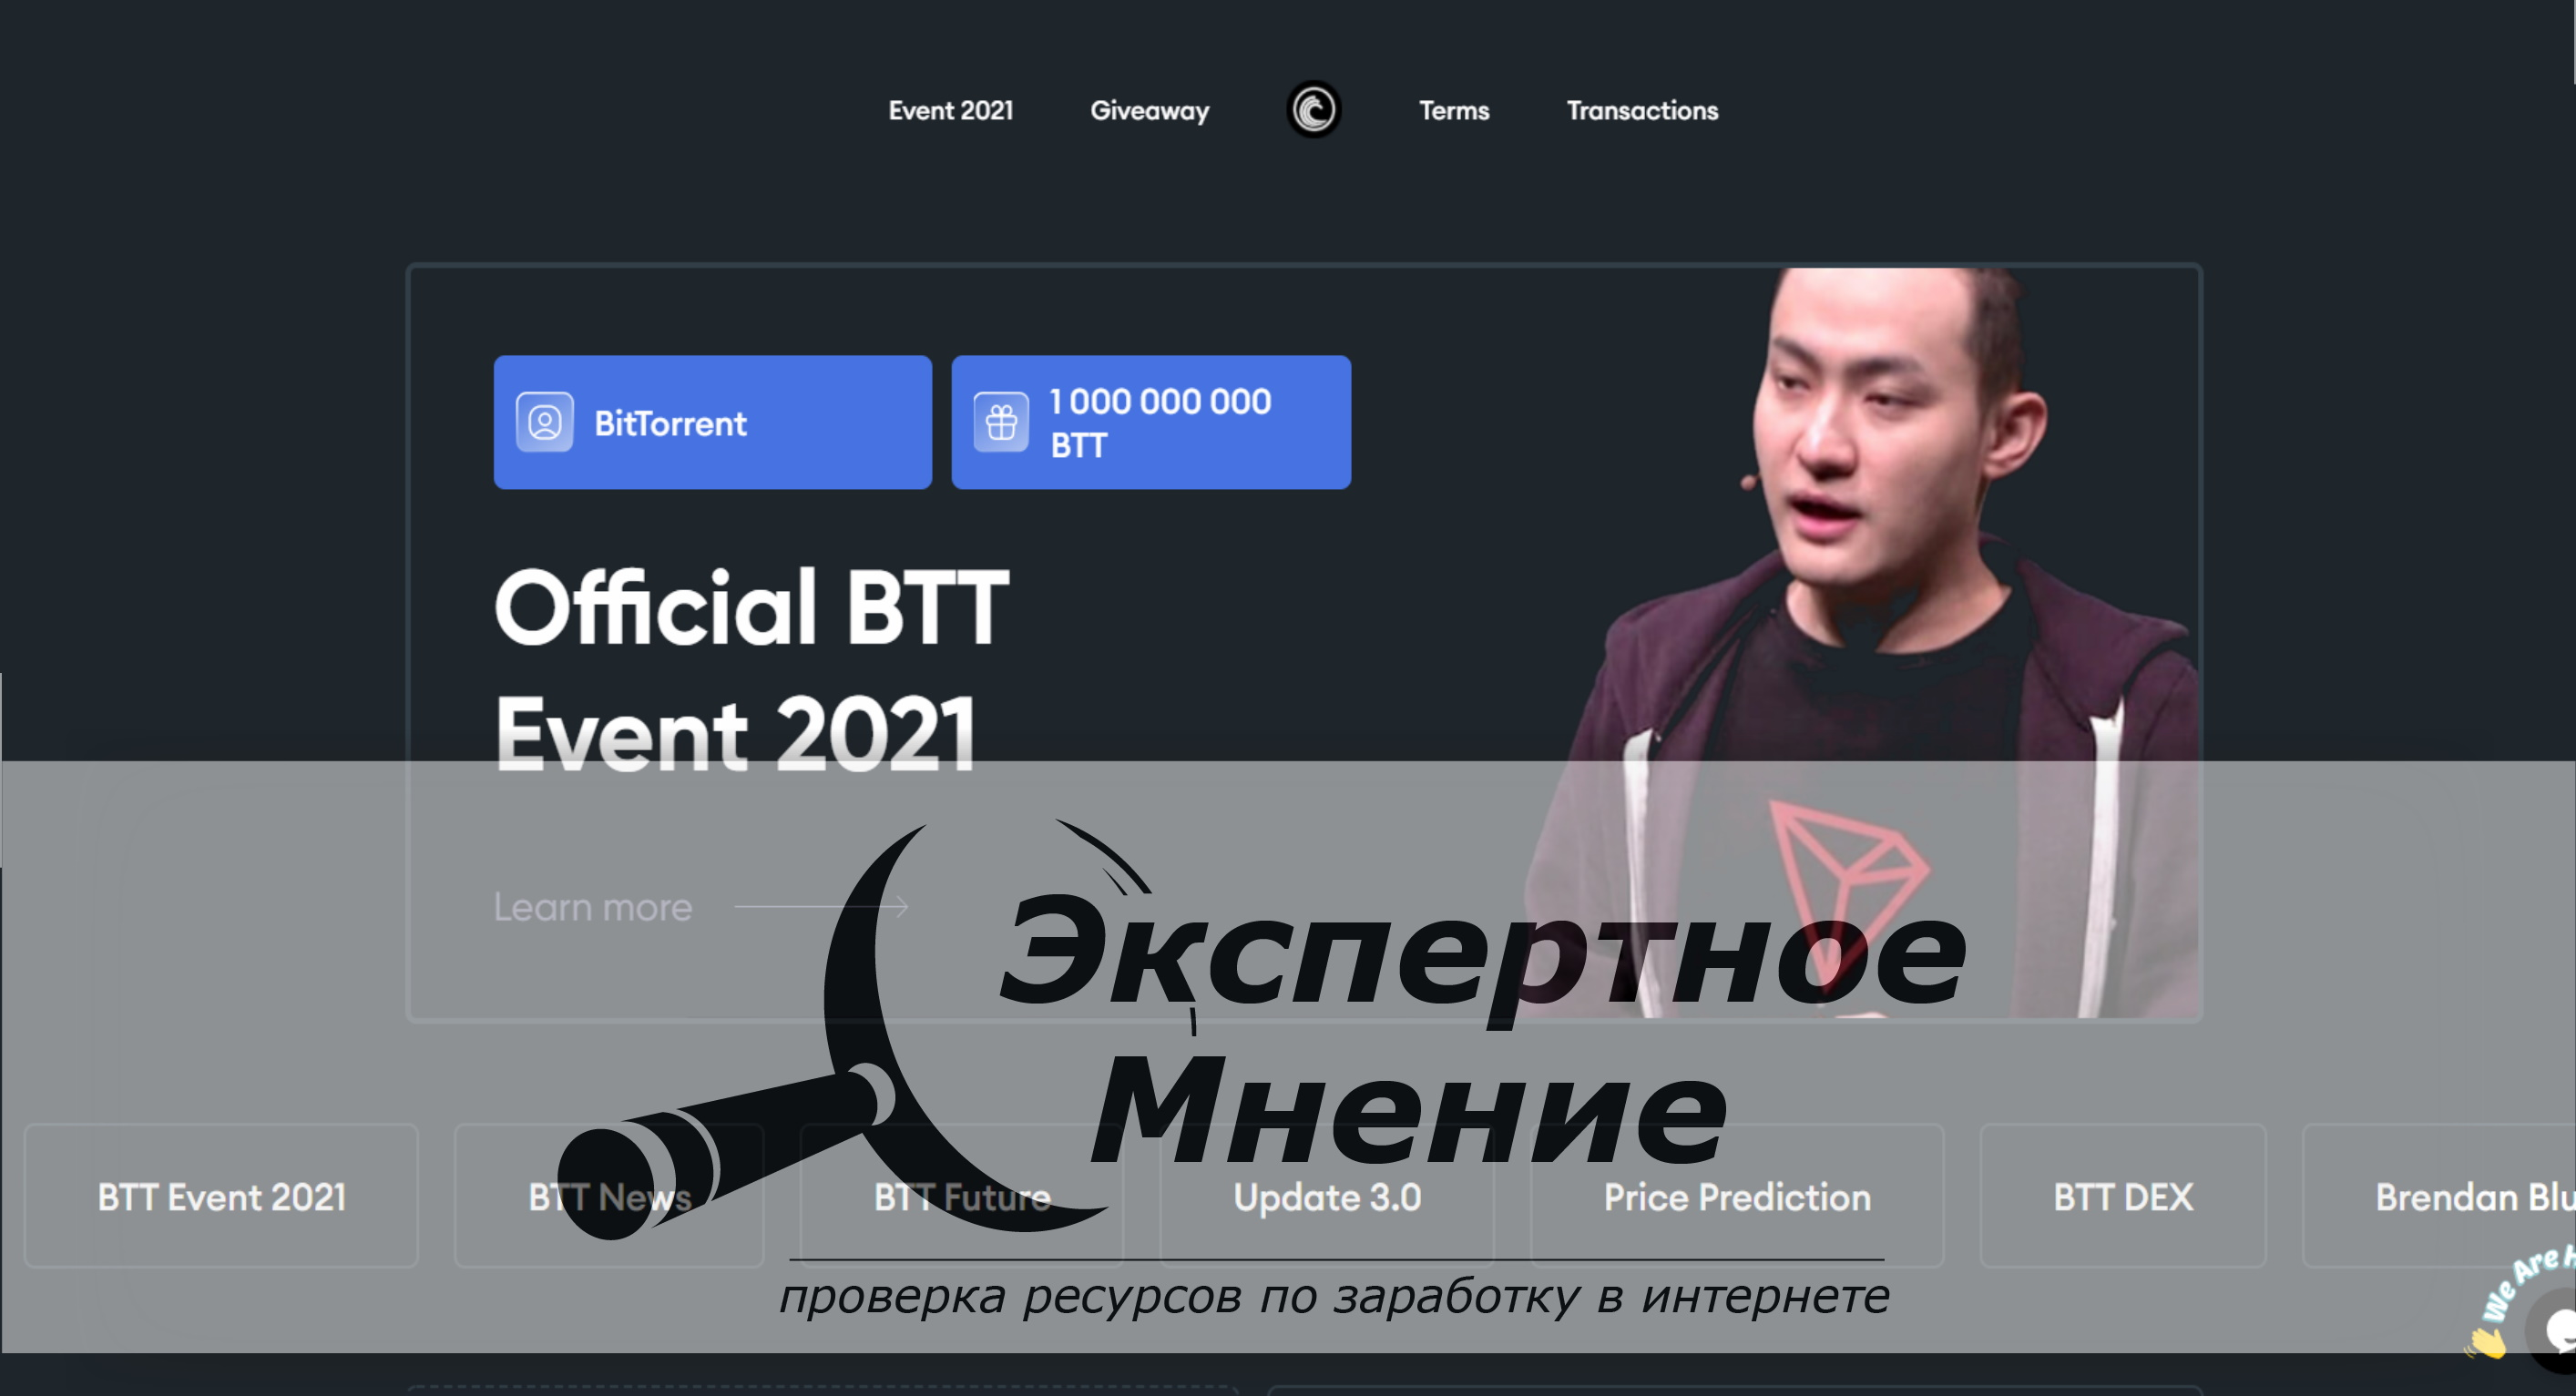 Фальшивый обменник The Official BTT Giveaway by Justin Sun SCAM